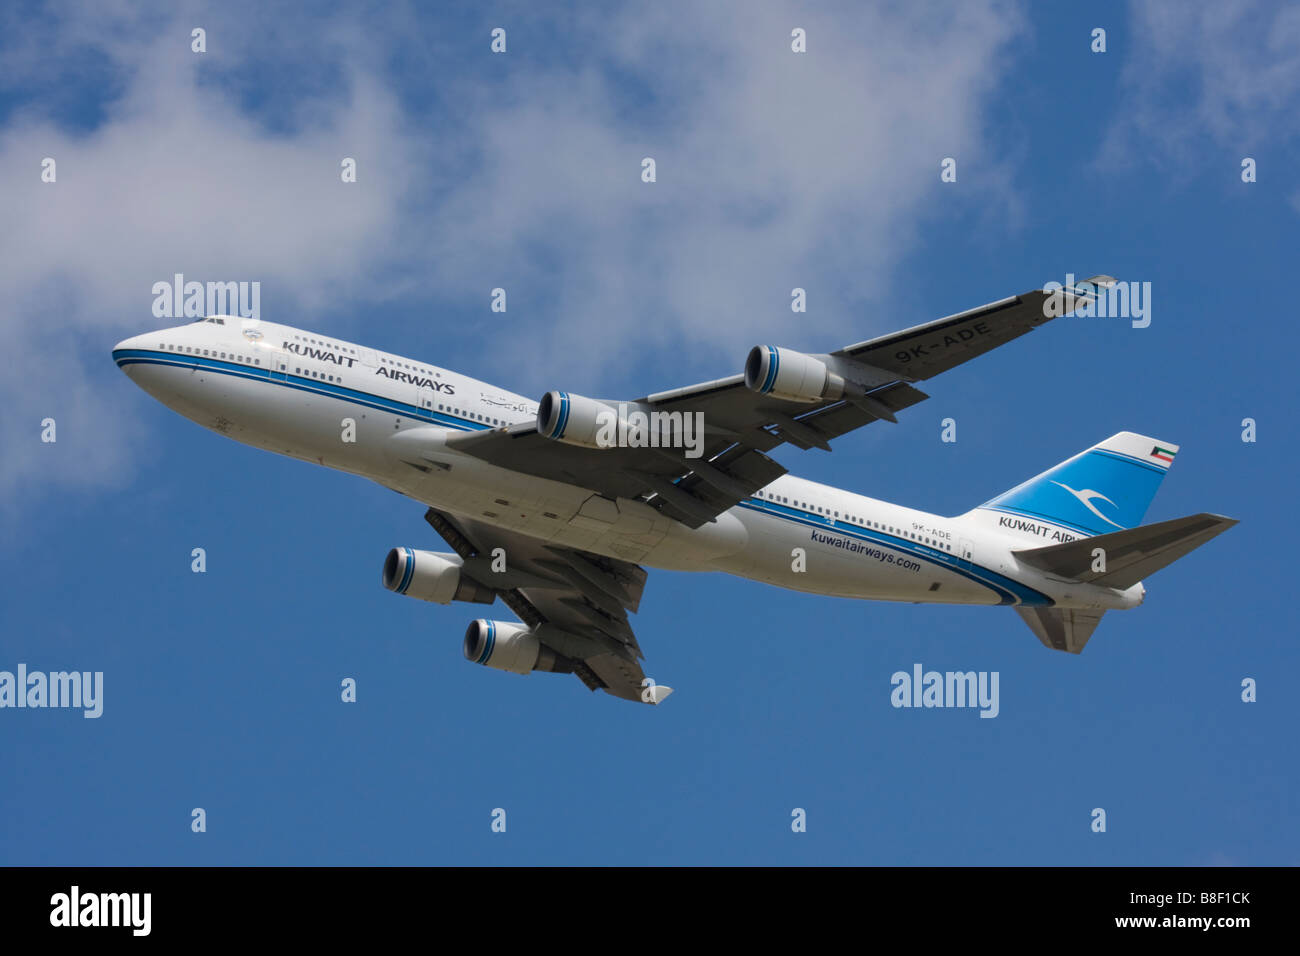 Kuwait Airways Boeing 747-469M departure at London Heathrow Airport, United Kingdom Stock Photo